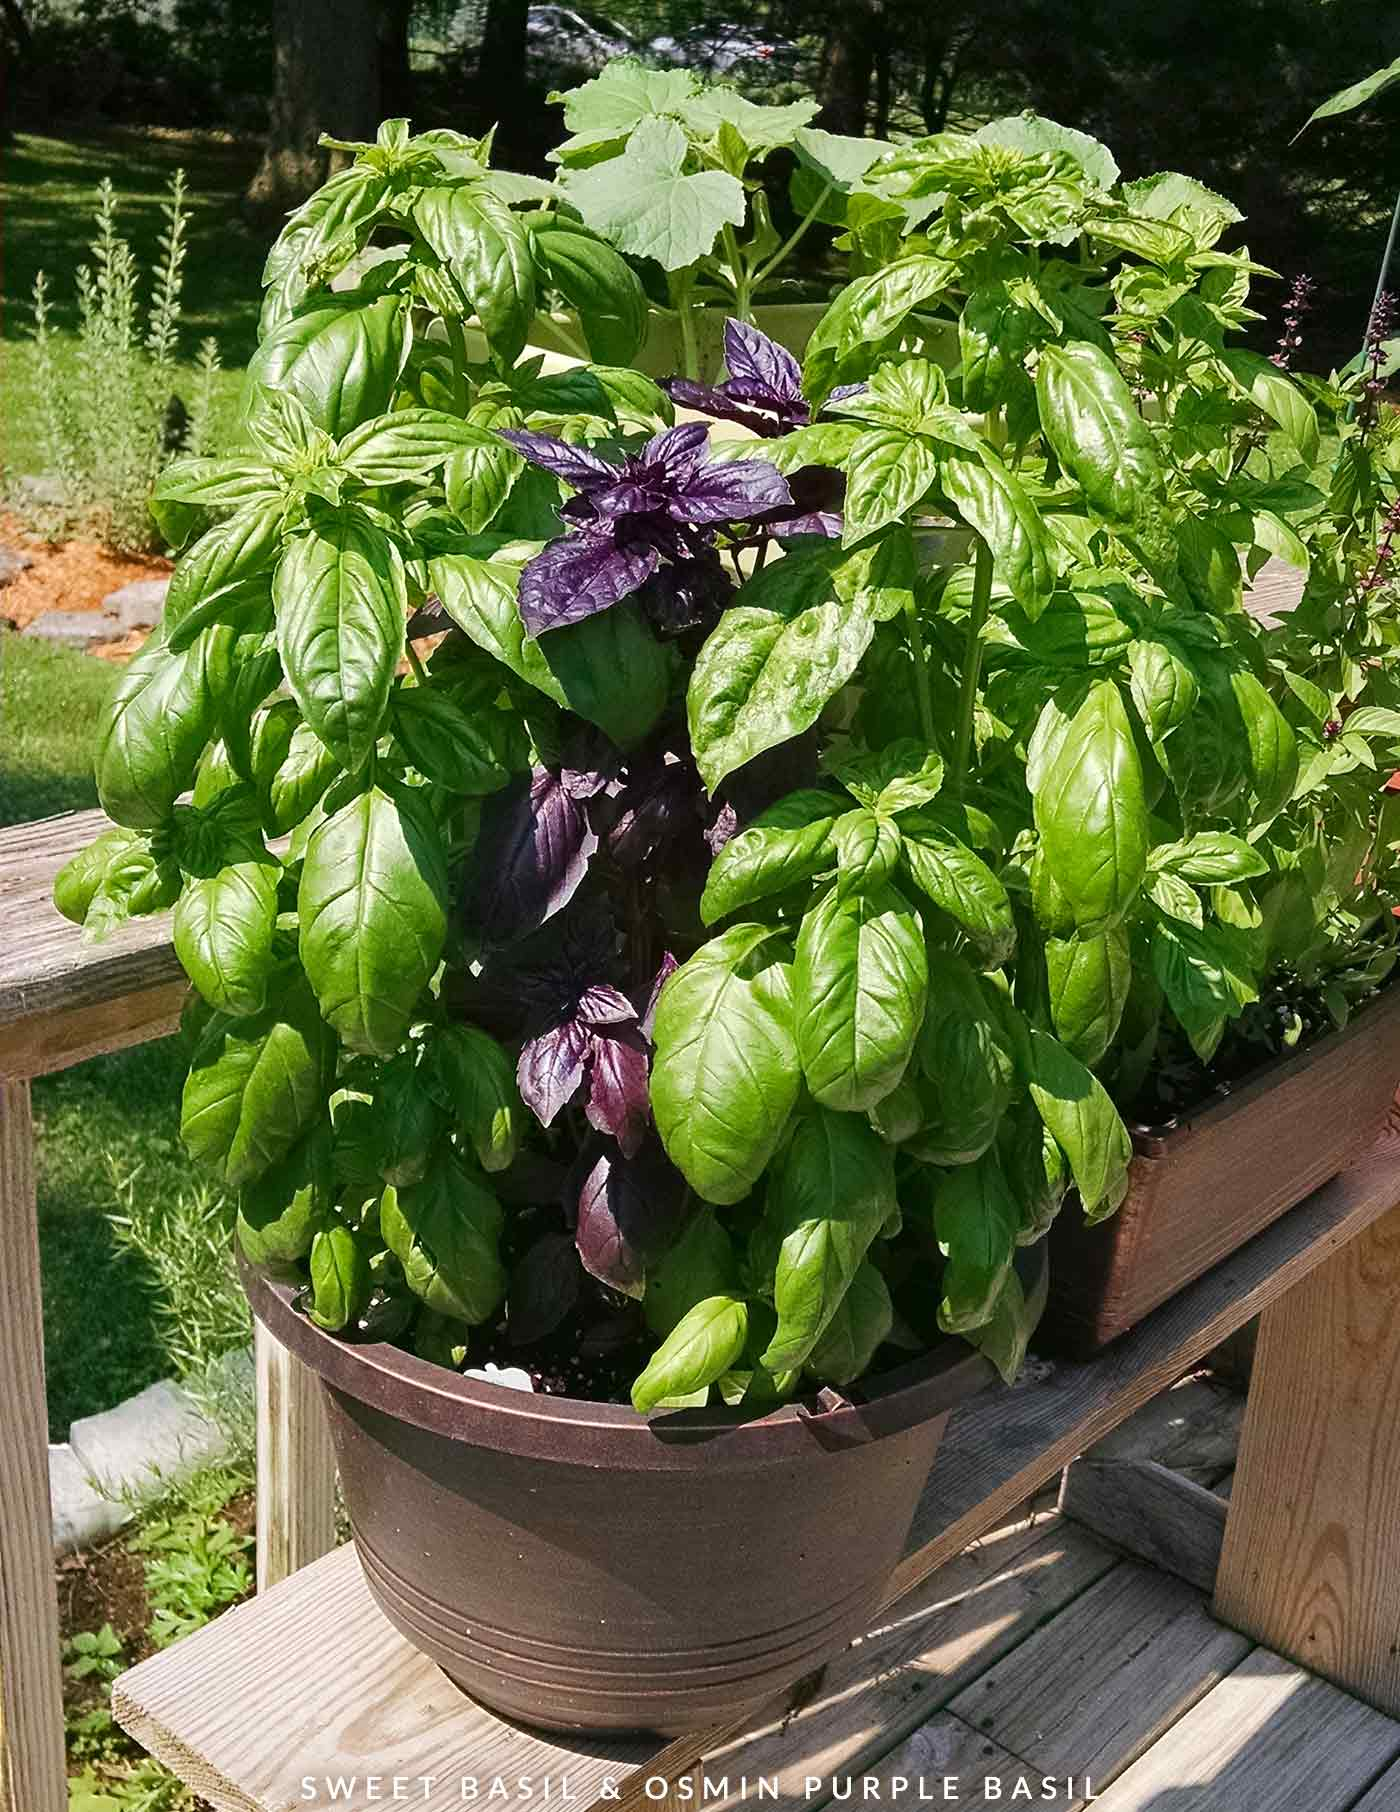 Basil plants growing in a container